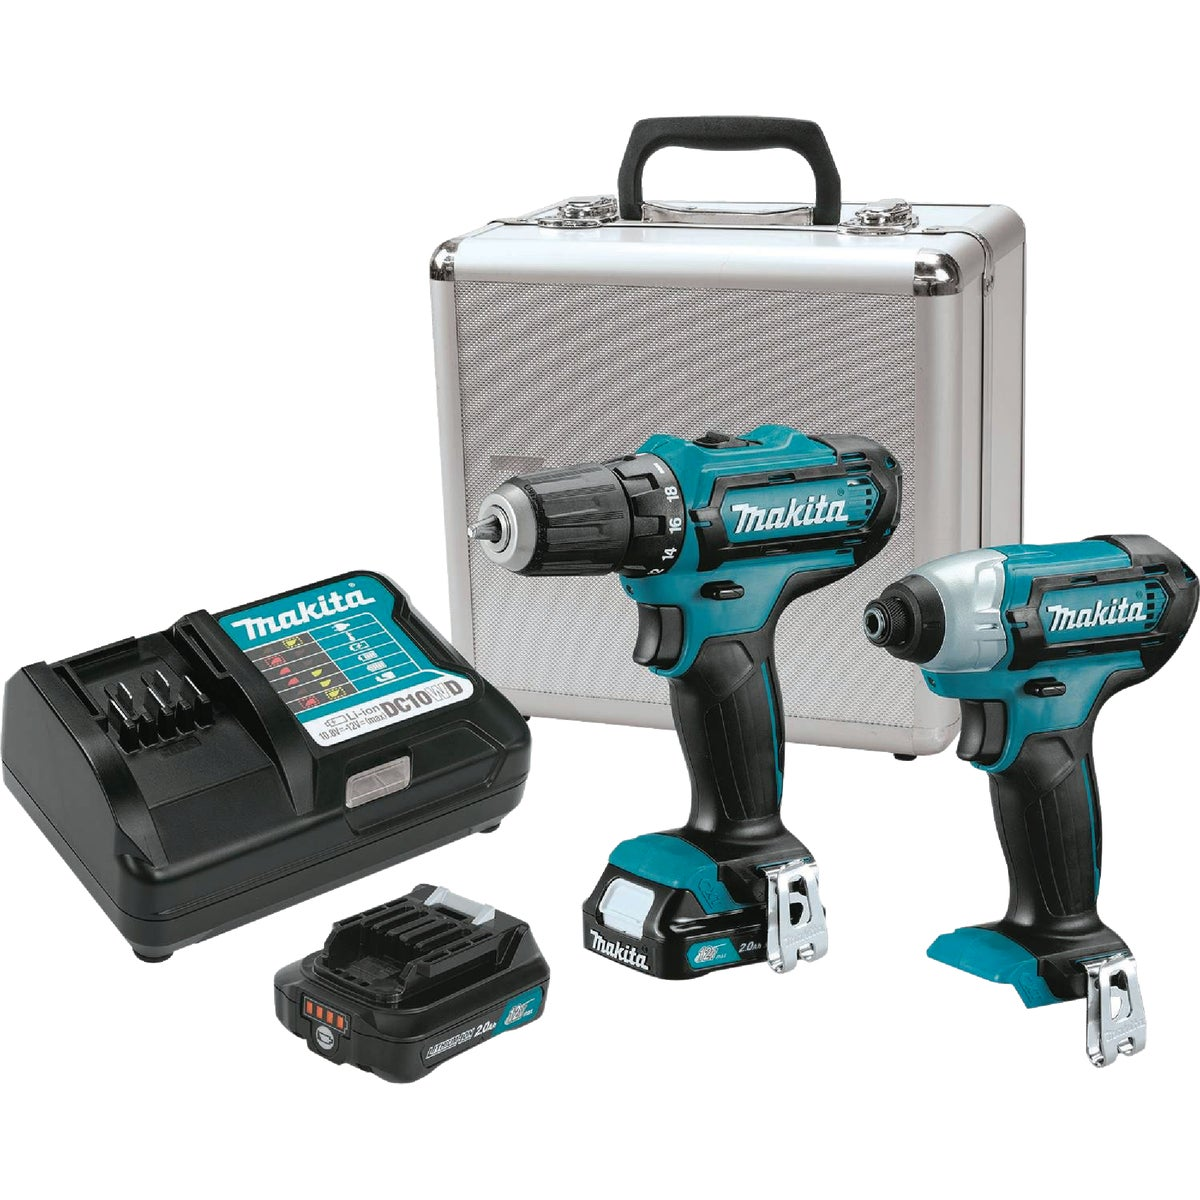 12V DRILL/IMPACT KIT - LCT209W by Makita Usa Inc